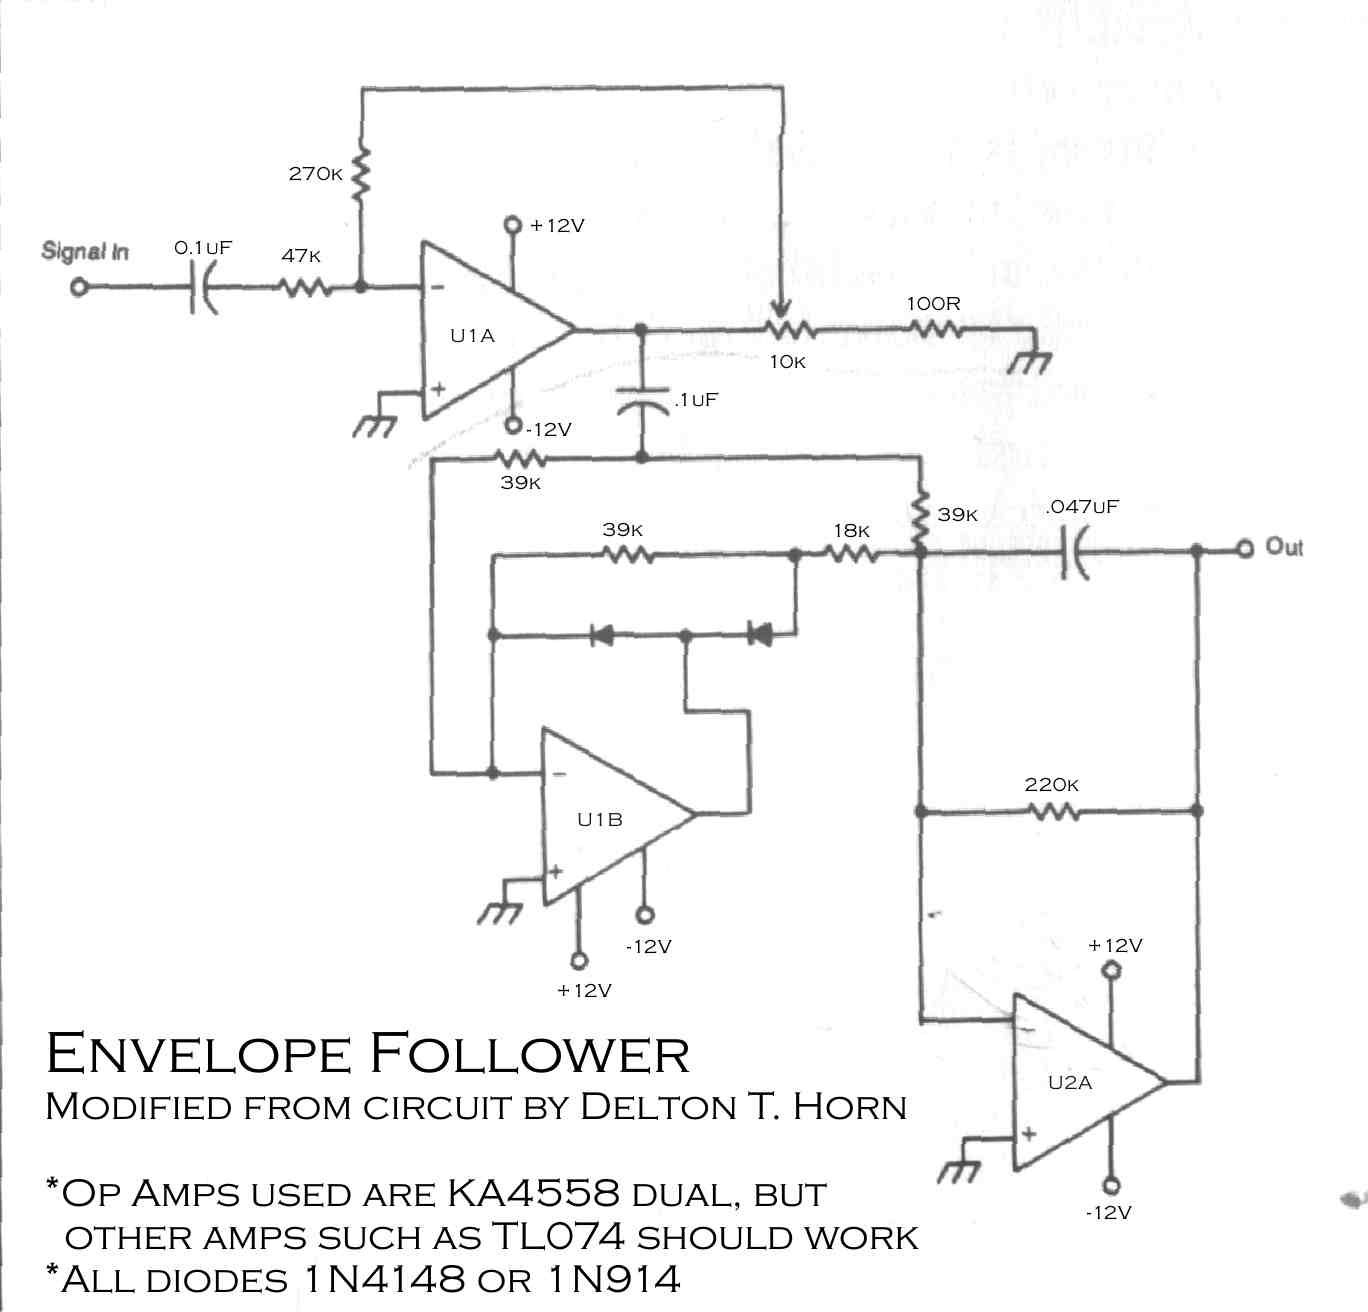 Envelope Follower Schematic Schematics Wiring Diagrams 84 Xr200r Diagram Circuit Google Zoeken Electronic Rh Pinterest Com